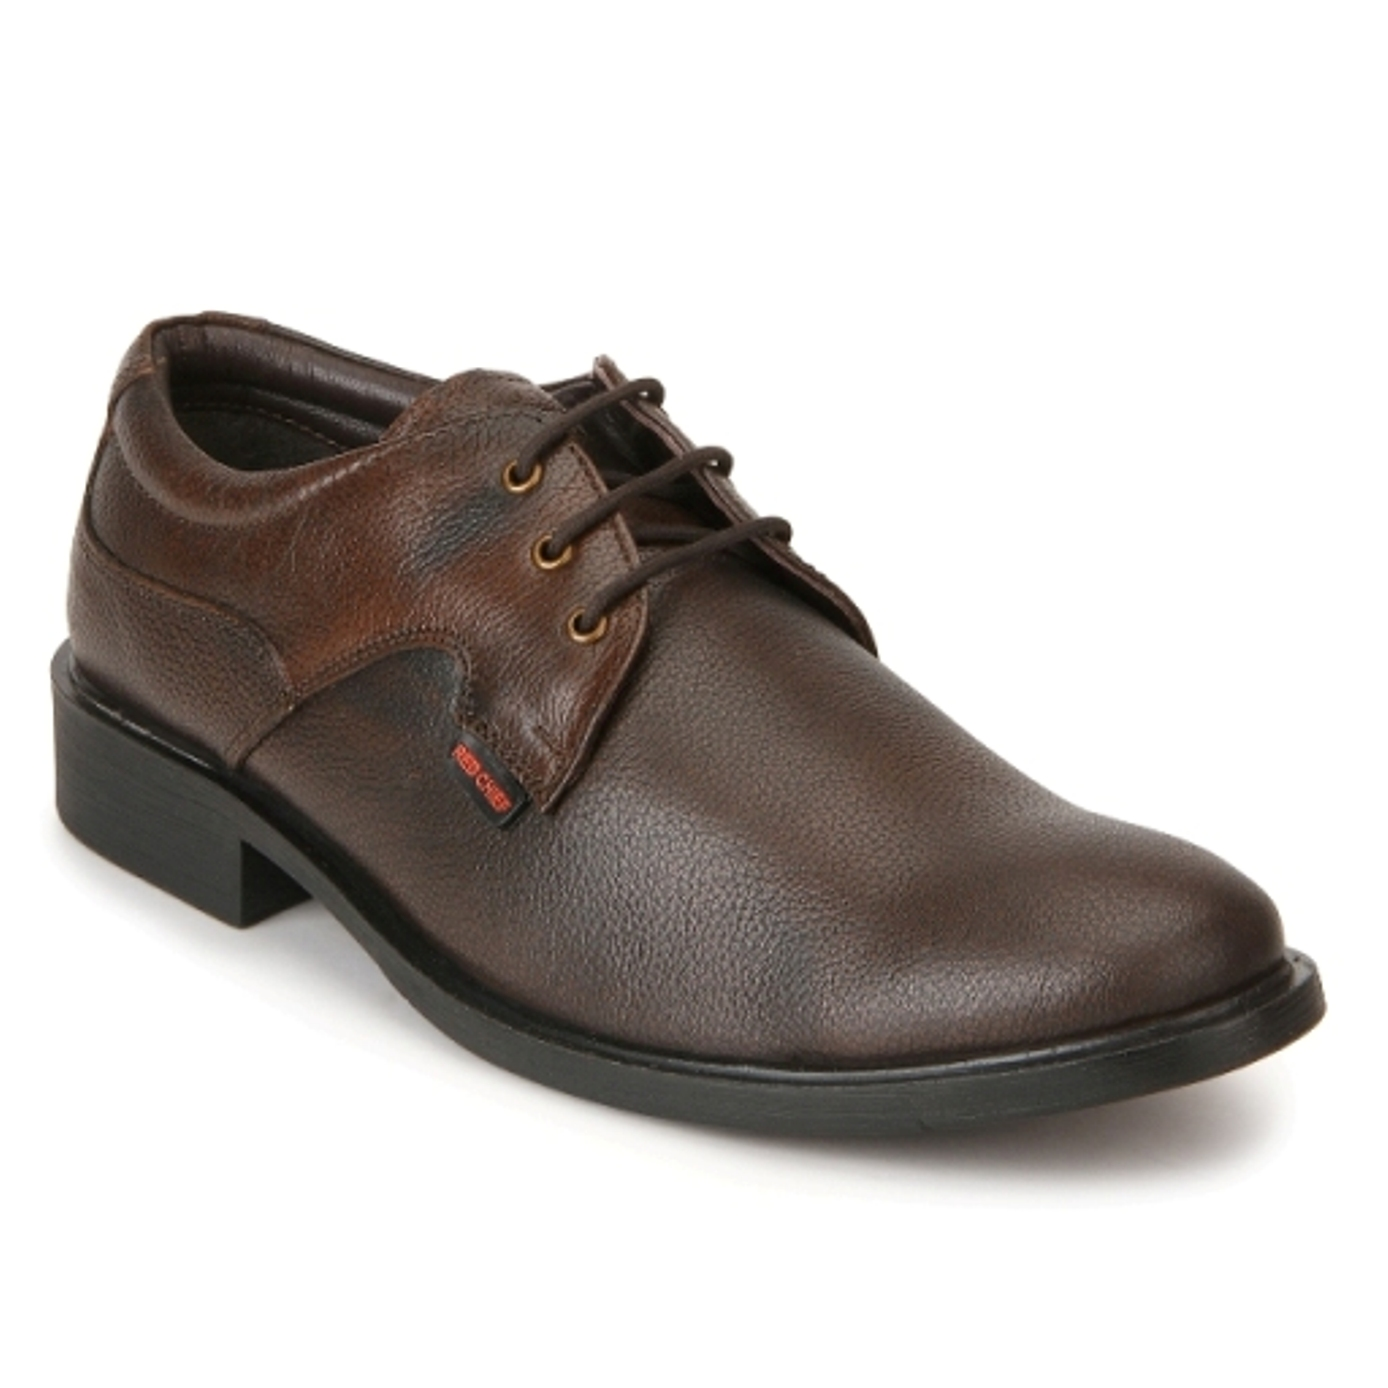 RED CHIEF | RC2282 003- Brown Derby Shoes